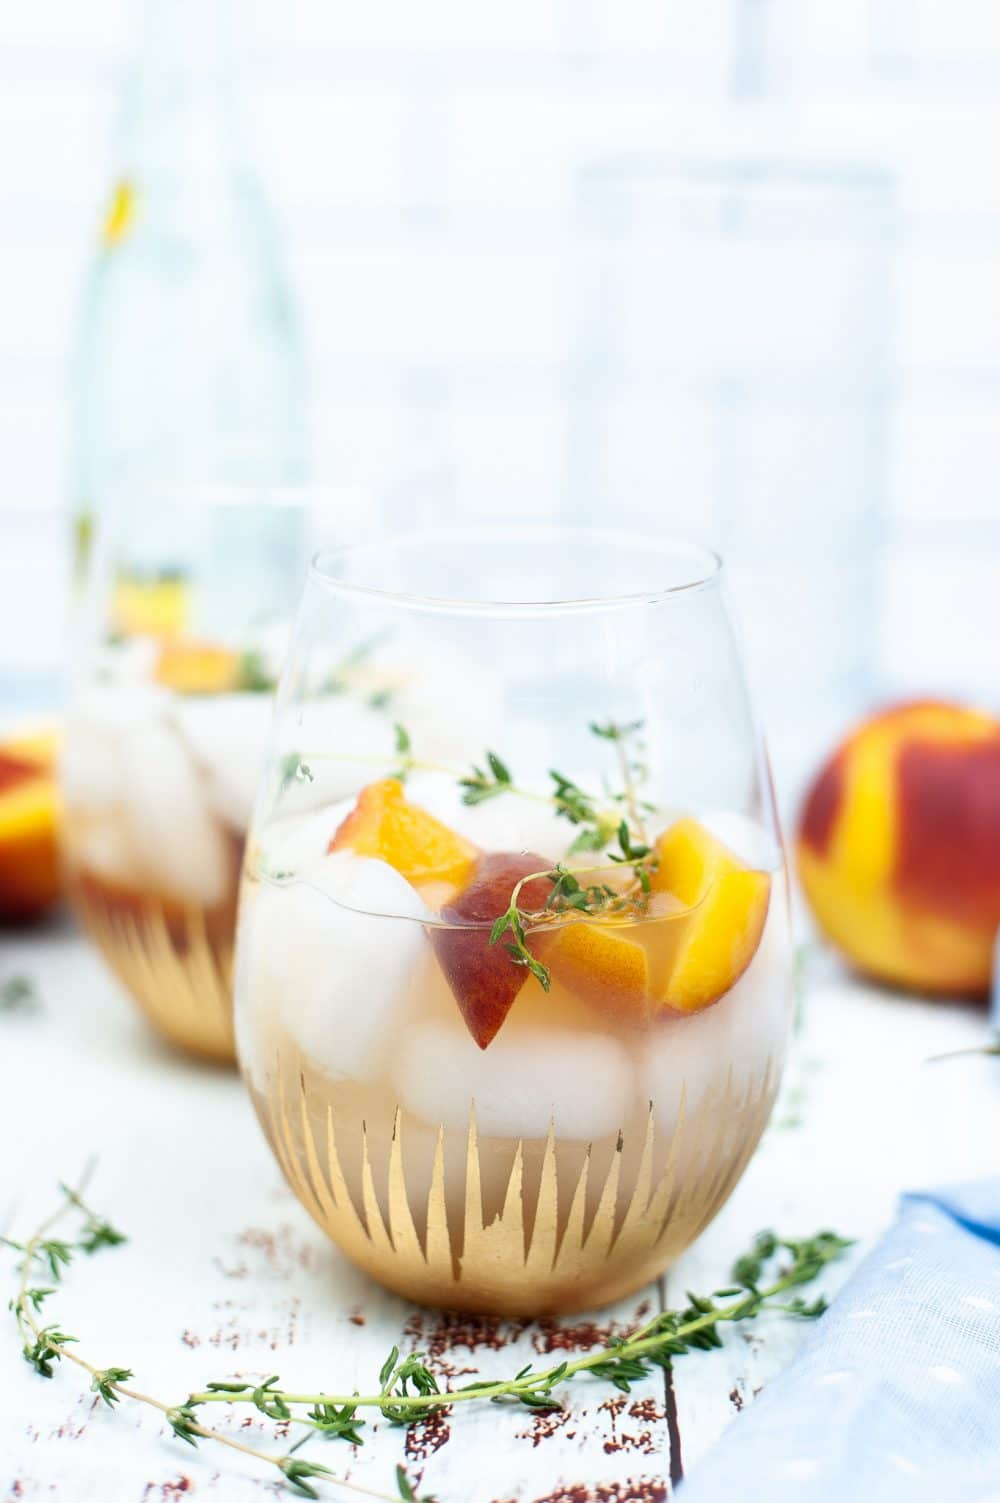 Peach syrup cocktail in a glass dressed with slices of peaches and thyme sprigs